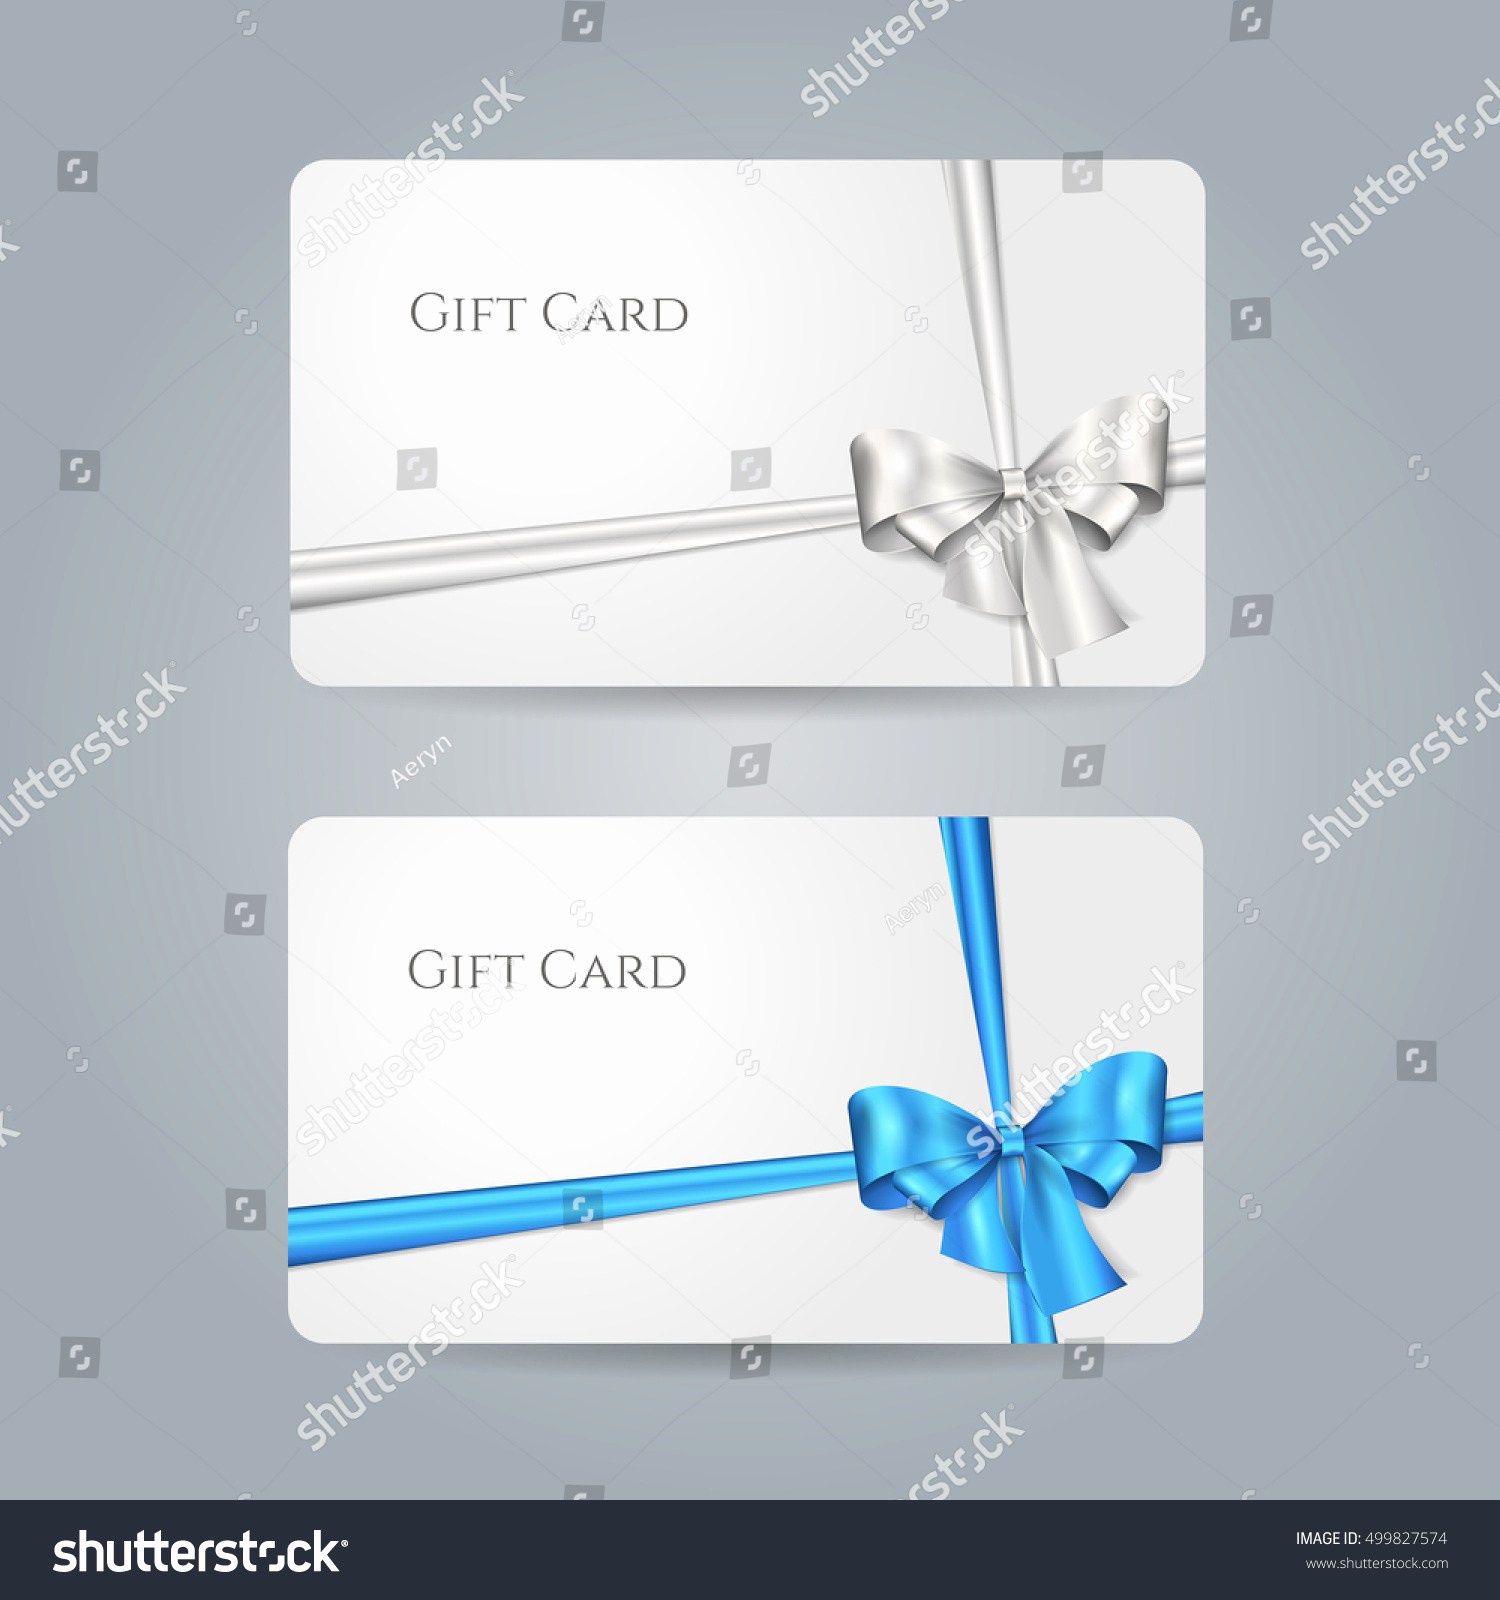 Credit Card Invitation Template Inspirational White Gift Card Blue Silver Bow Stock Vector